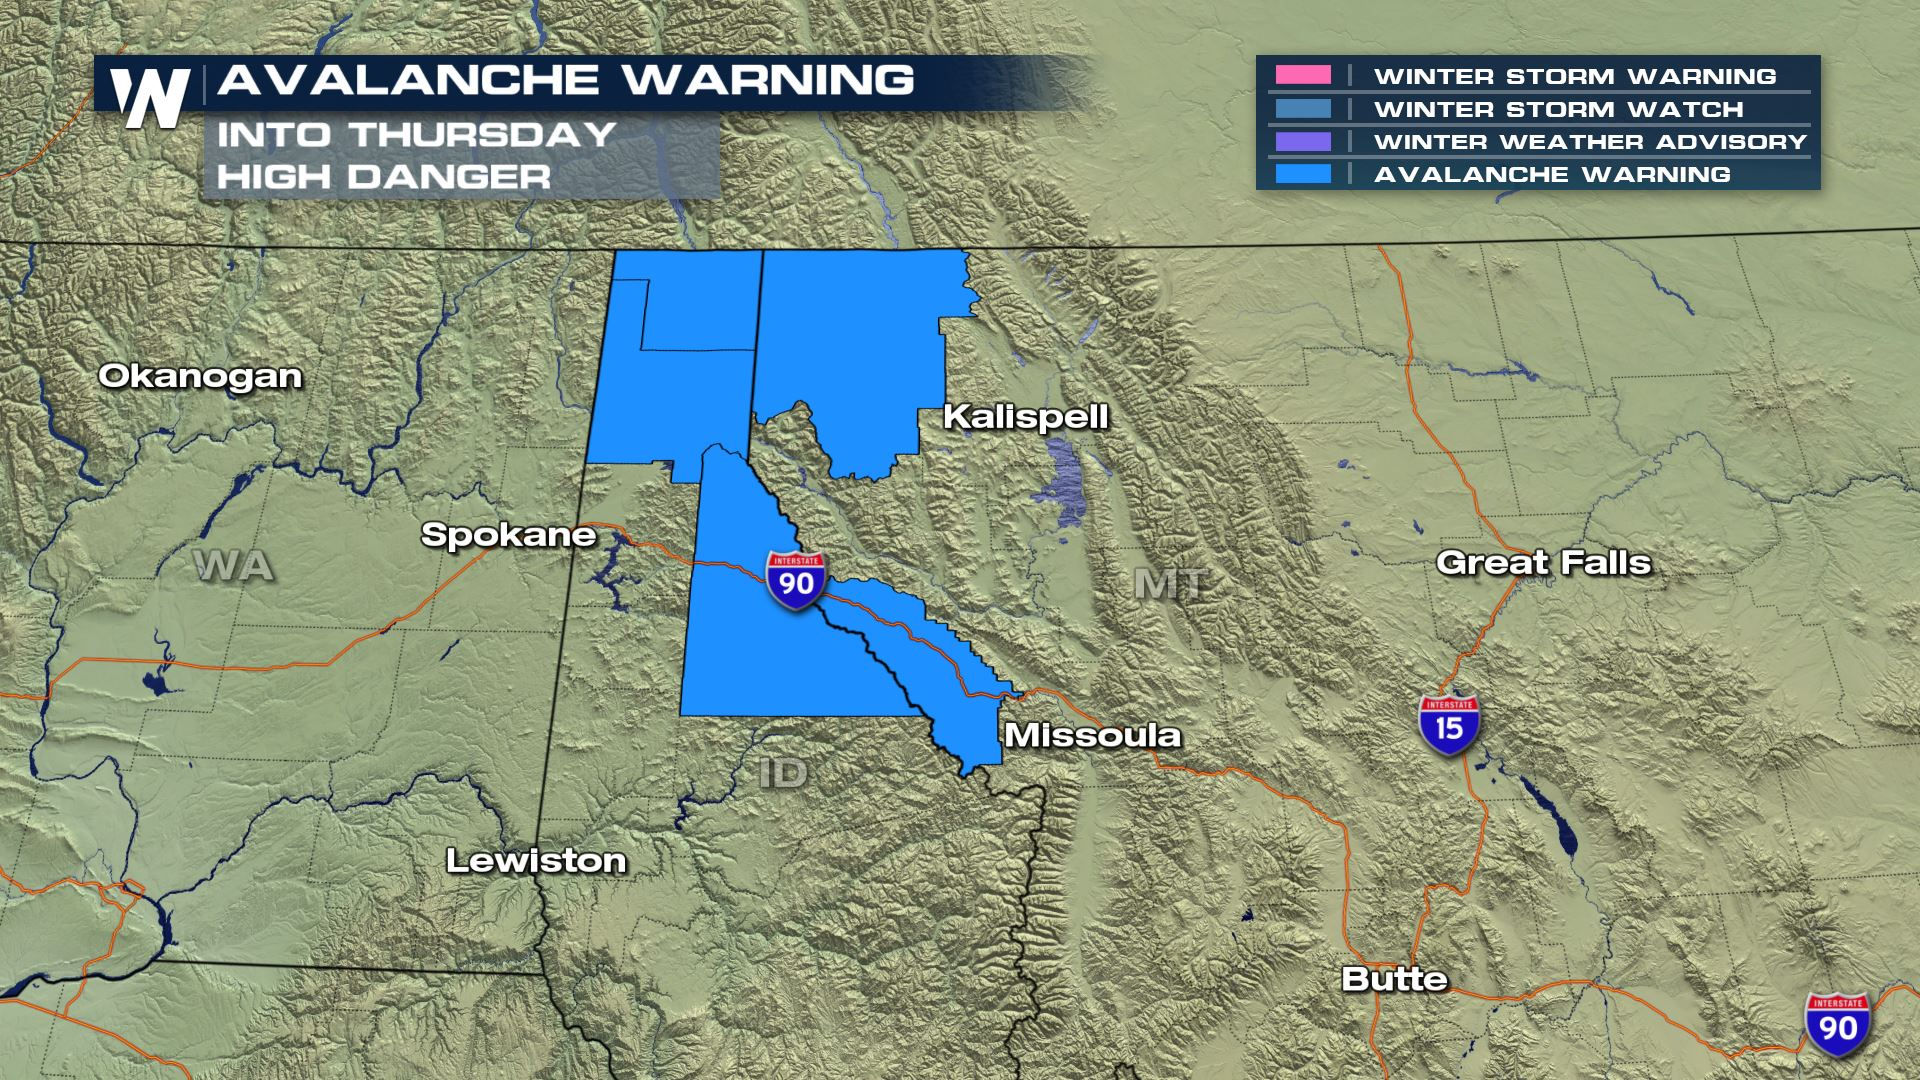 Avalanche Warnings Continue in Parts of the West